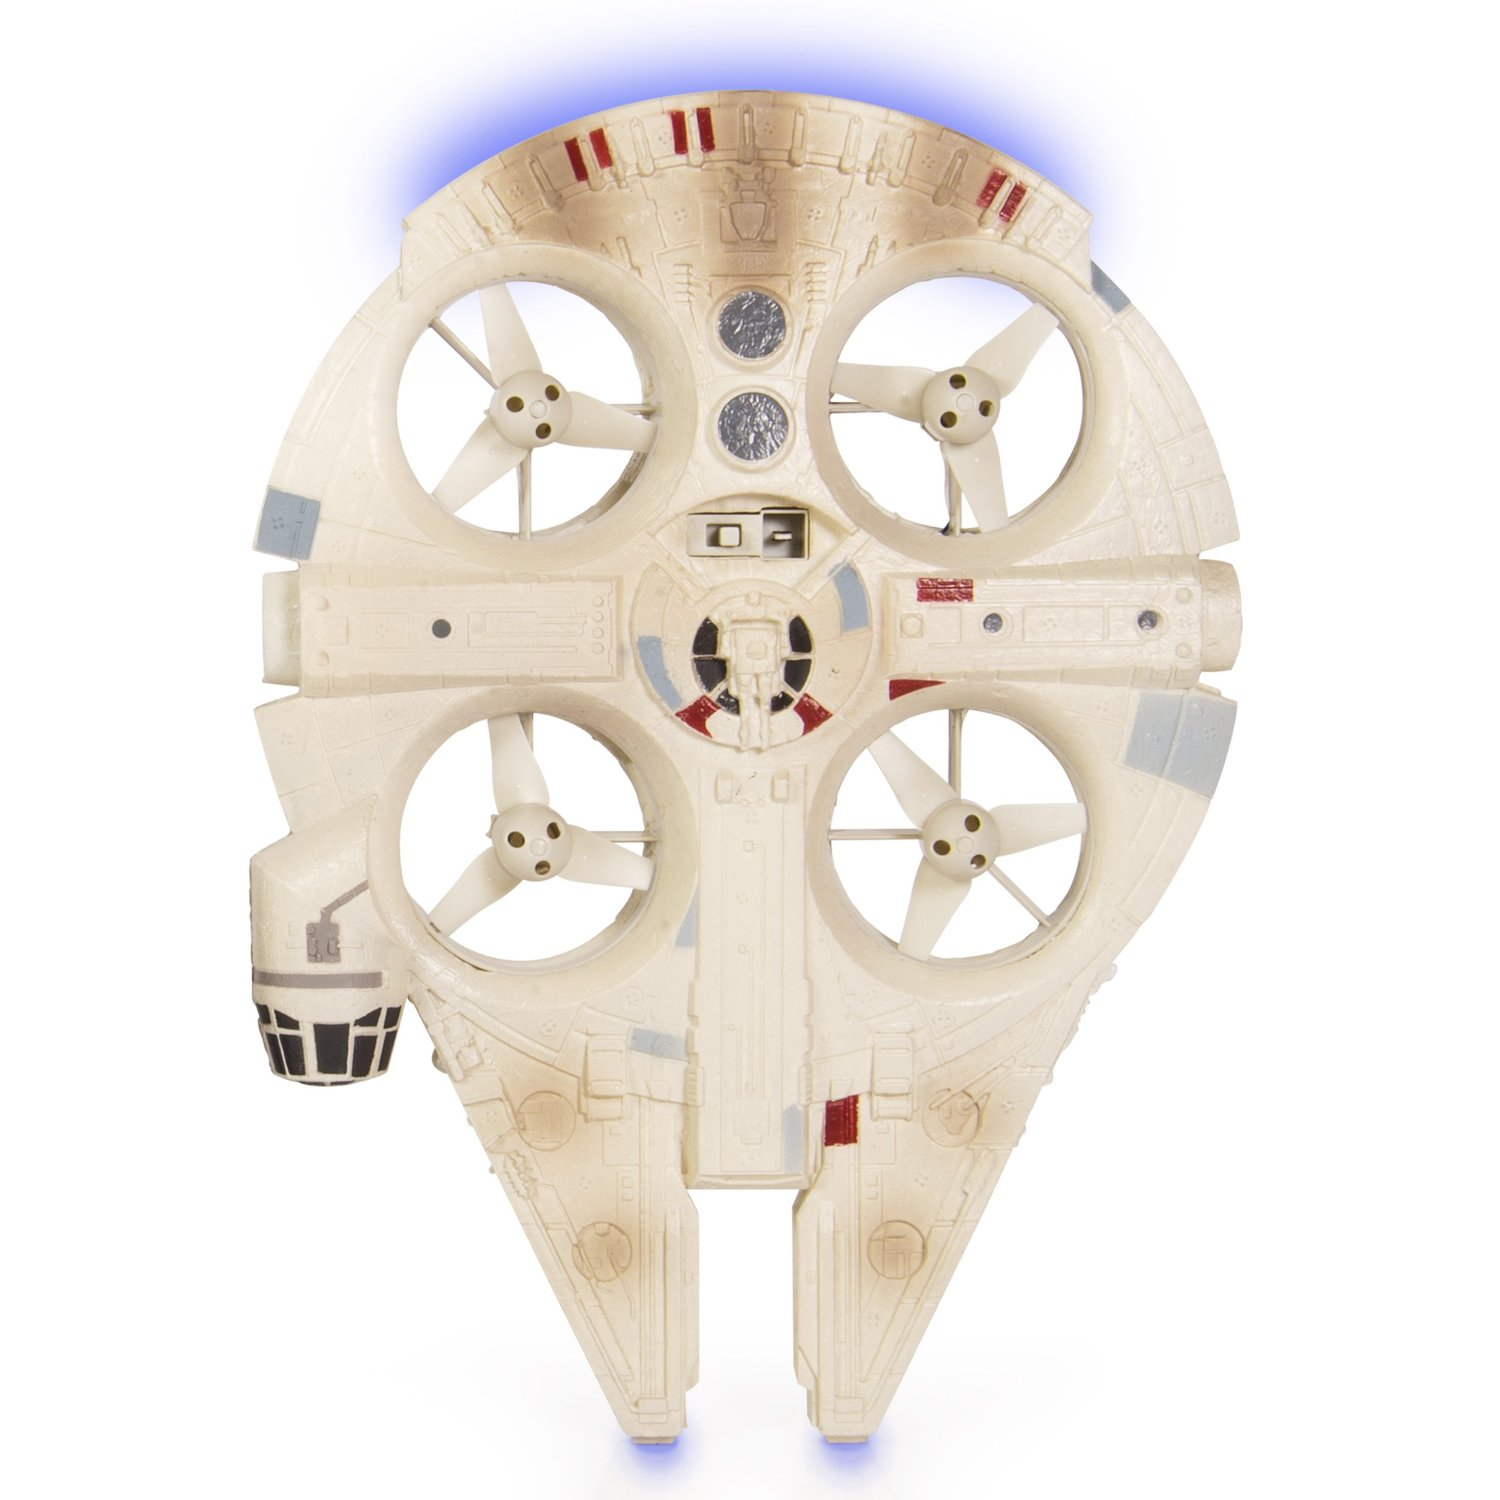 Millenium Falcon Quadcopter Star Wars Quadcopter RC Drone